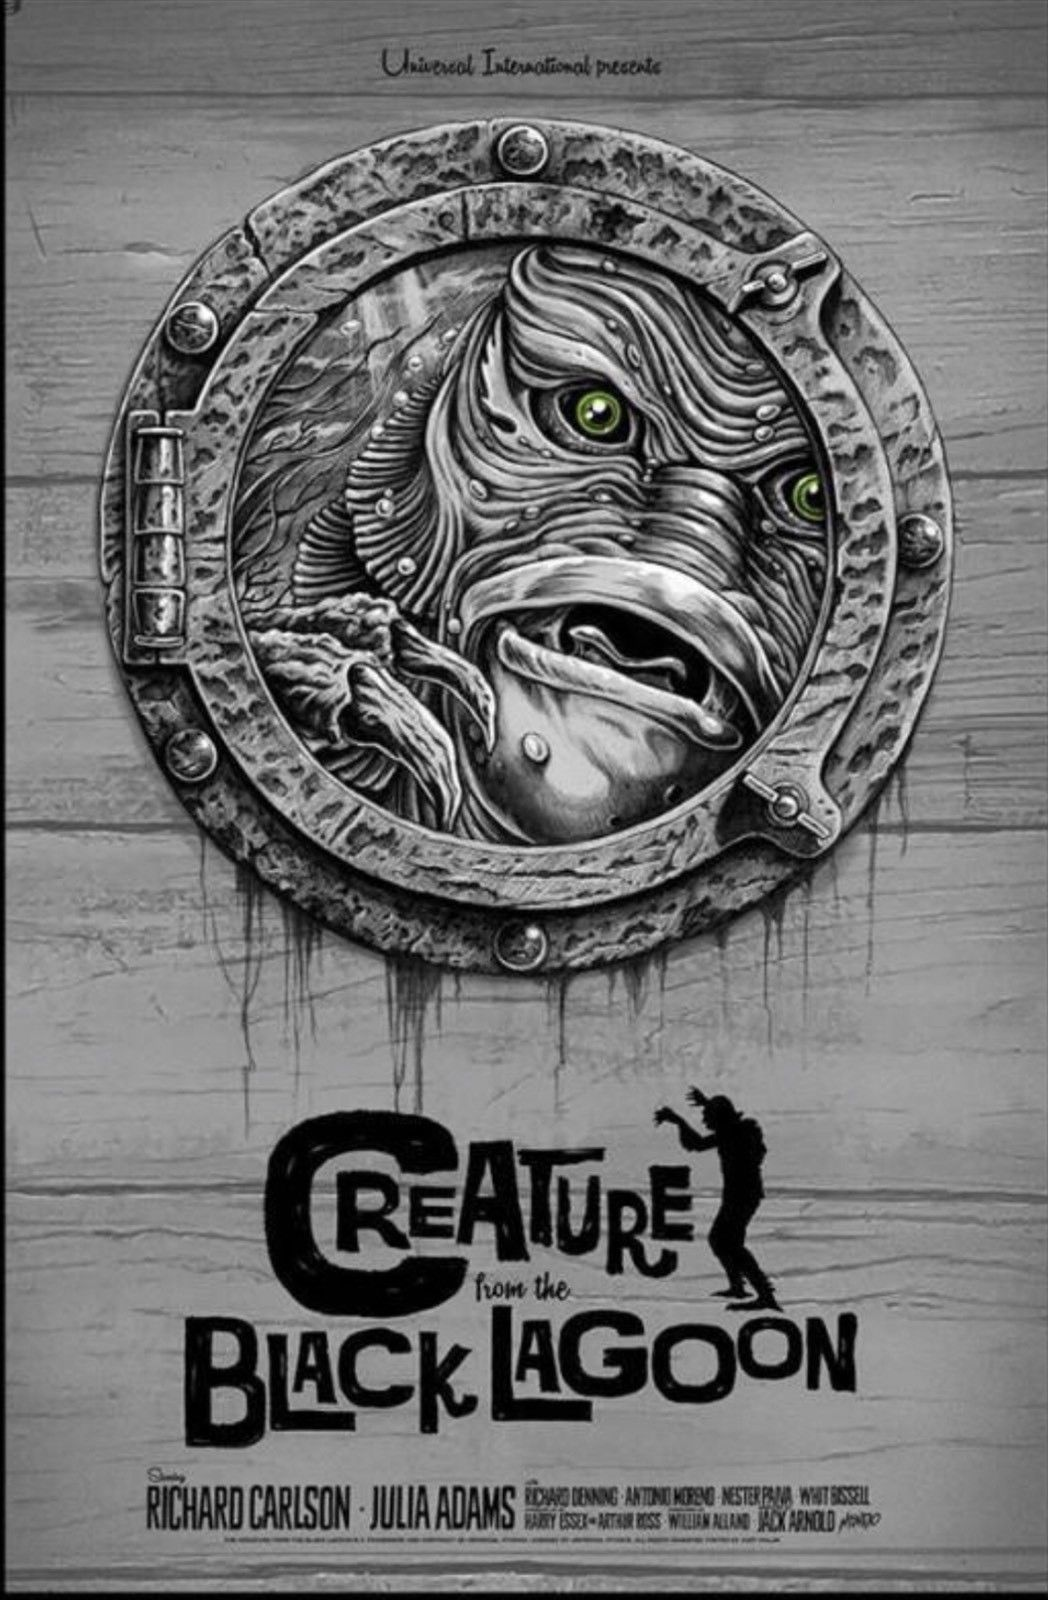 Pin by Kenny Berg on Creature From the Black Lagoon art